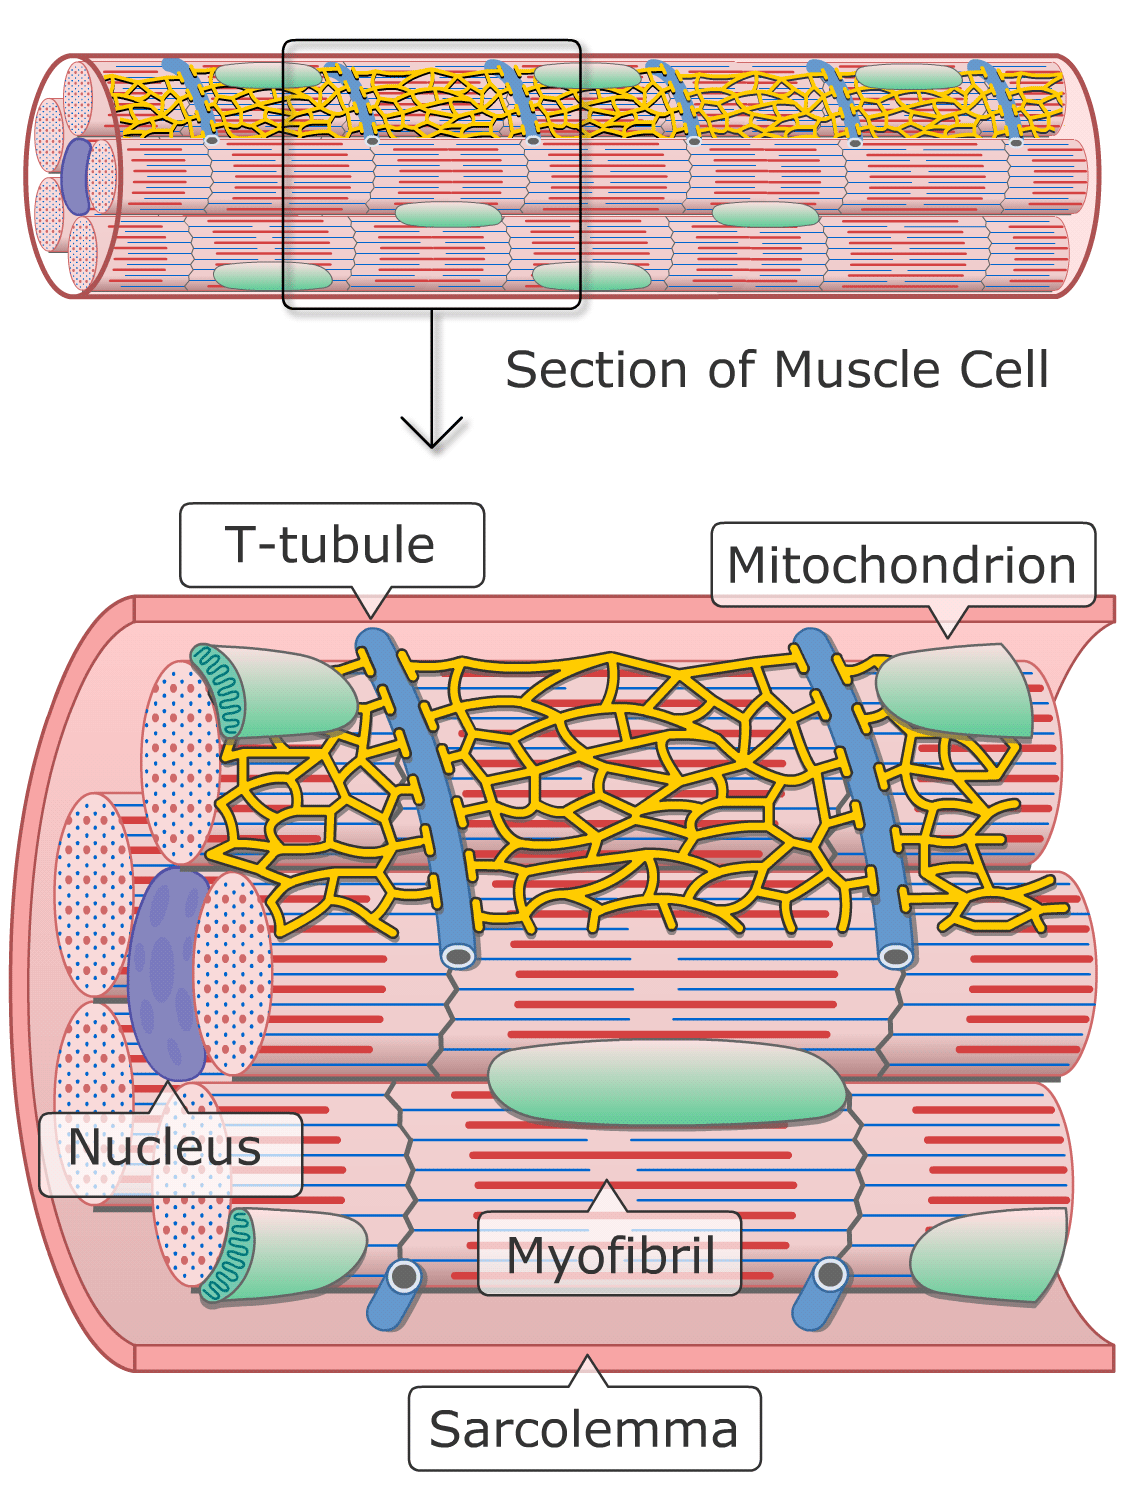 Ultrastructure structure of cardiac muscle cells (Illustration)